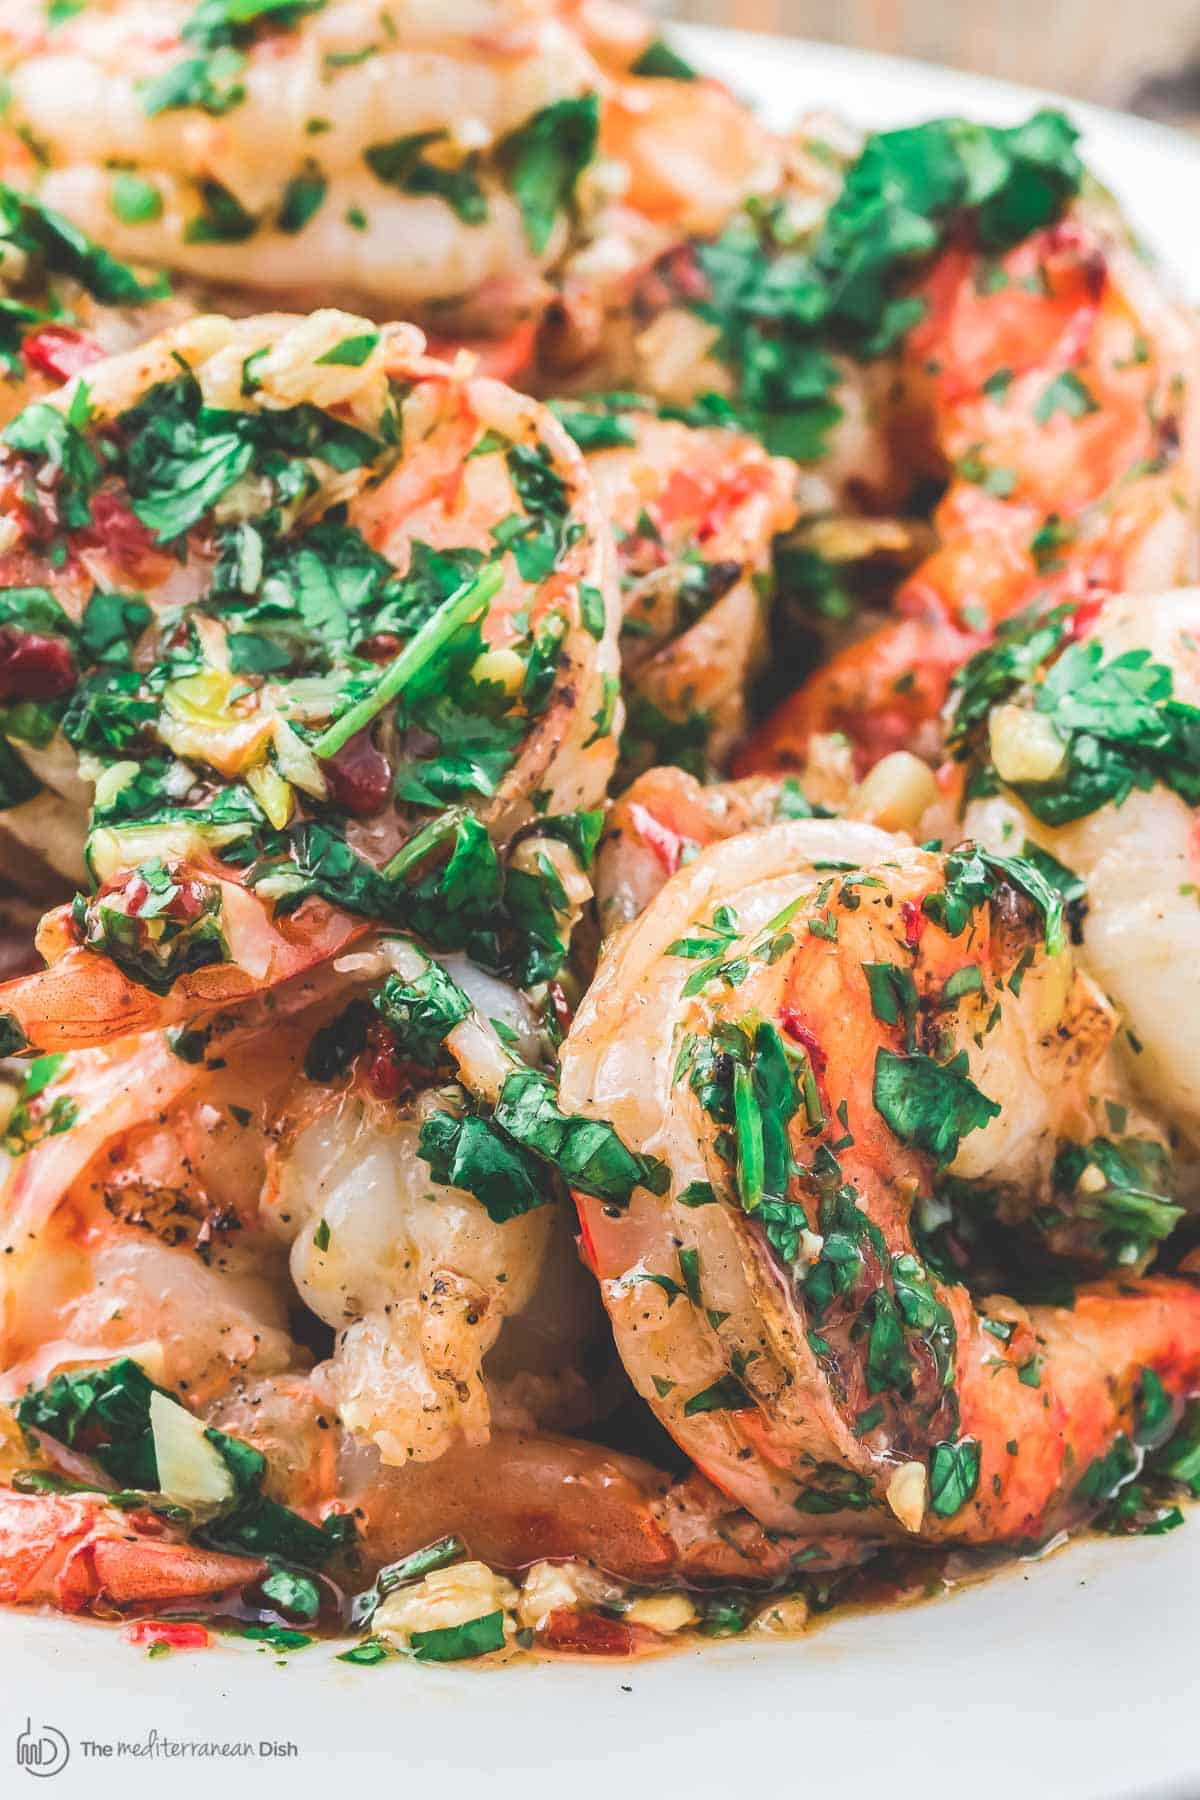 Grilled shrimp tossed in roasted garlic cilantro sauce served on a plate.